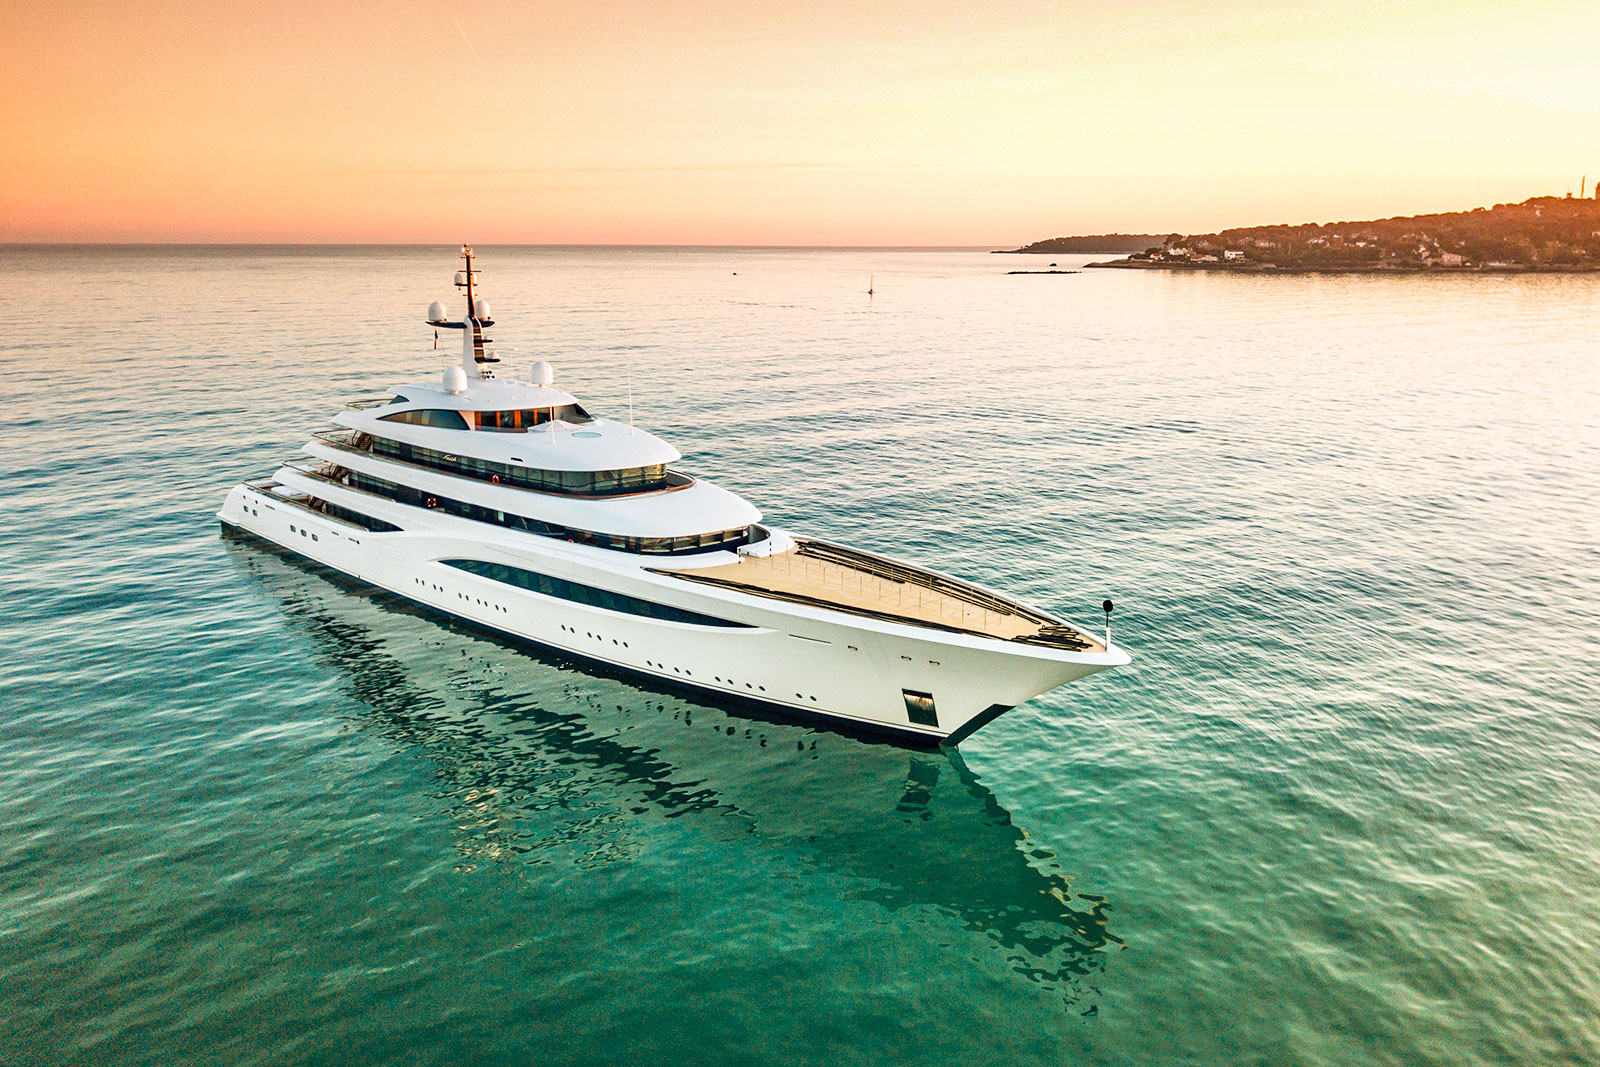 12 Mediterranean Yachts Over 35m to Charter in Summer 2020